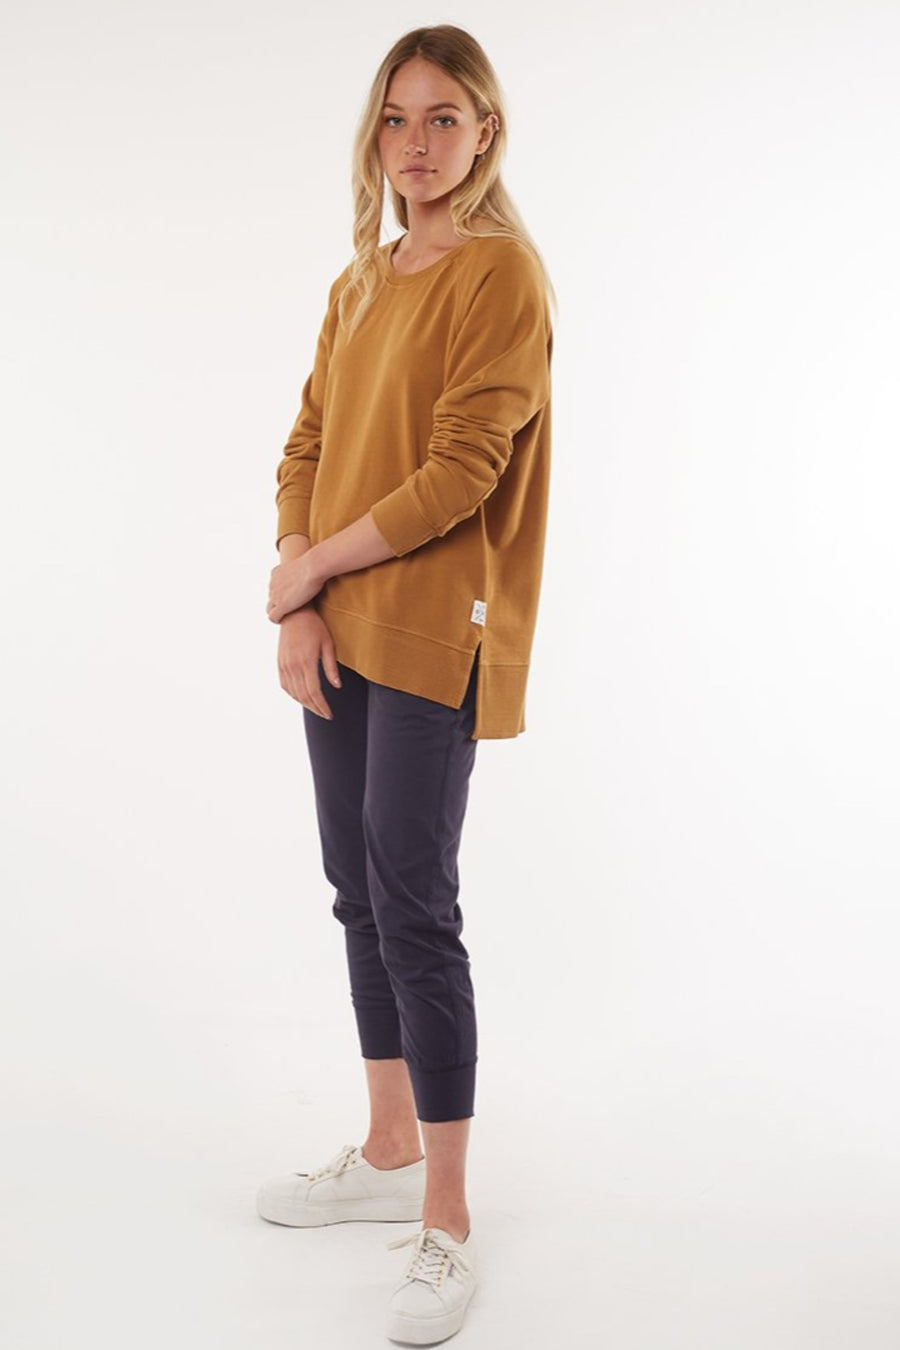 Fundamental Sydney Crew Mustard | Lyn Rose Boutique